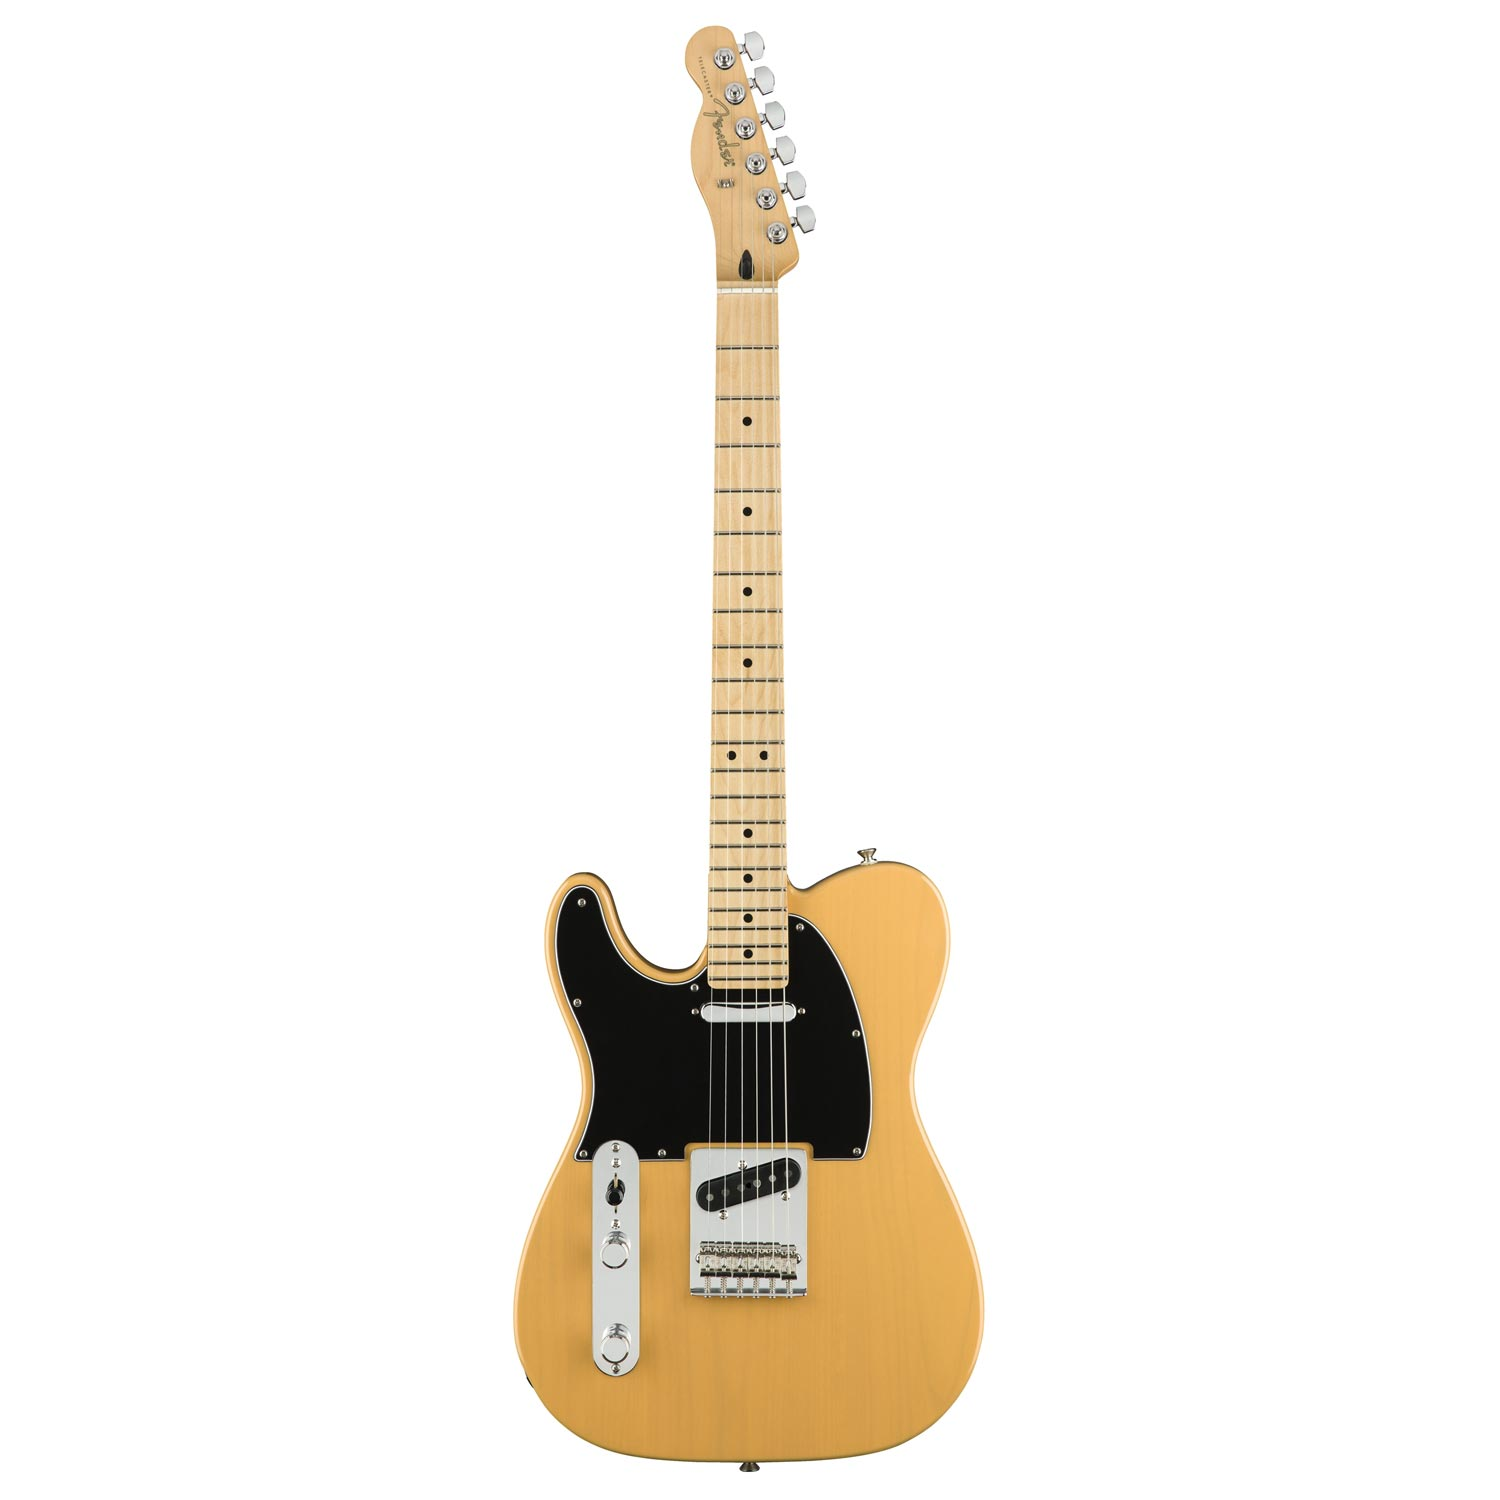 Fender Player Telecaster Left-Handed MN BTB - Guitarra zurda